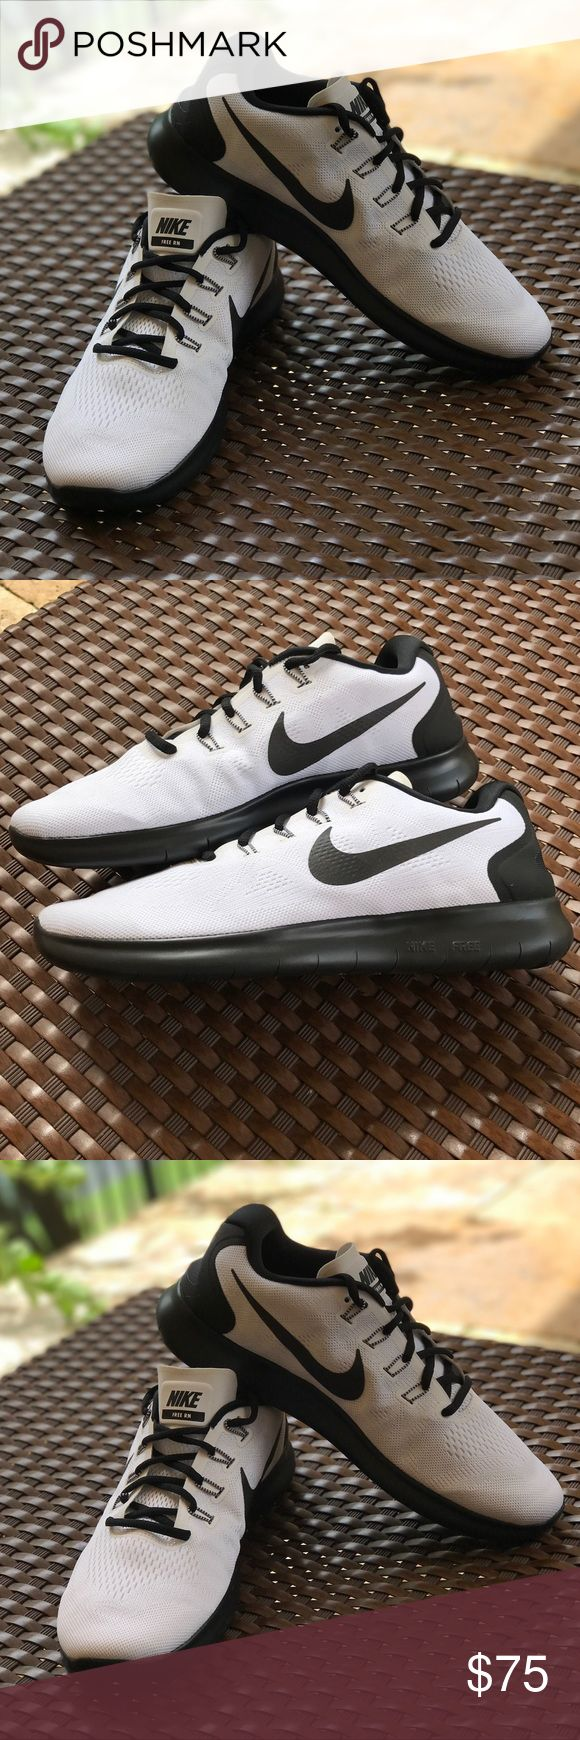 Nwt Nike ID free rn custom Brand new no box. Nike ID custom made.Price is firm!!The next generation of the coveted Nike Free is here. Now with a newly designed auxetic tri-star outsole pattern, the Men's Nike Free RN Running Shoe offers the most flexible